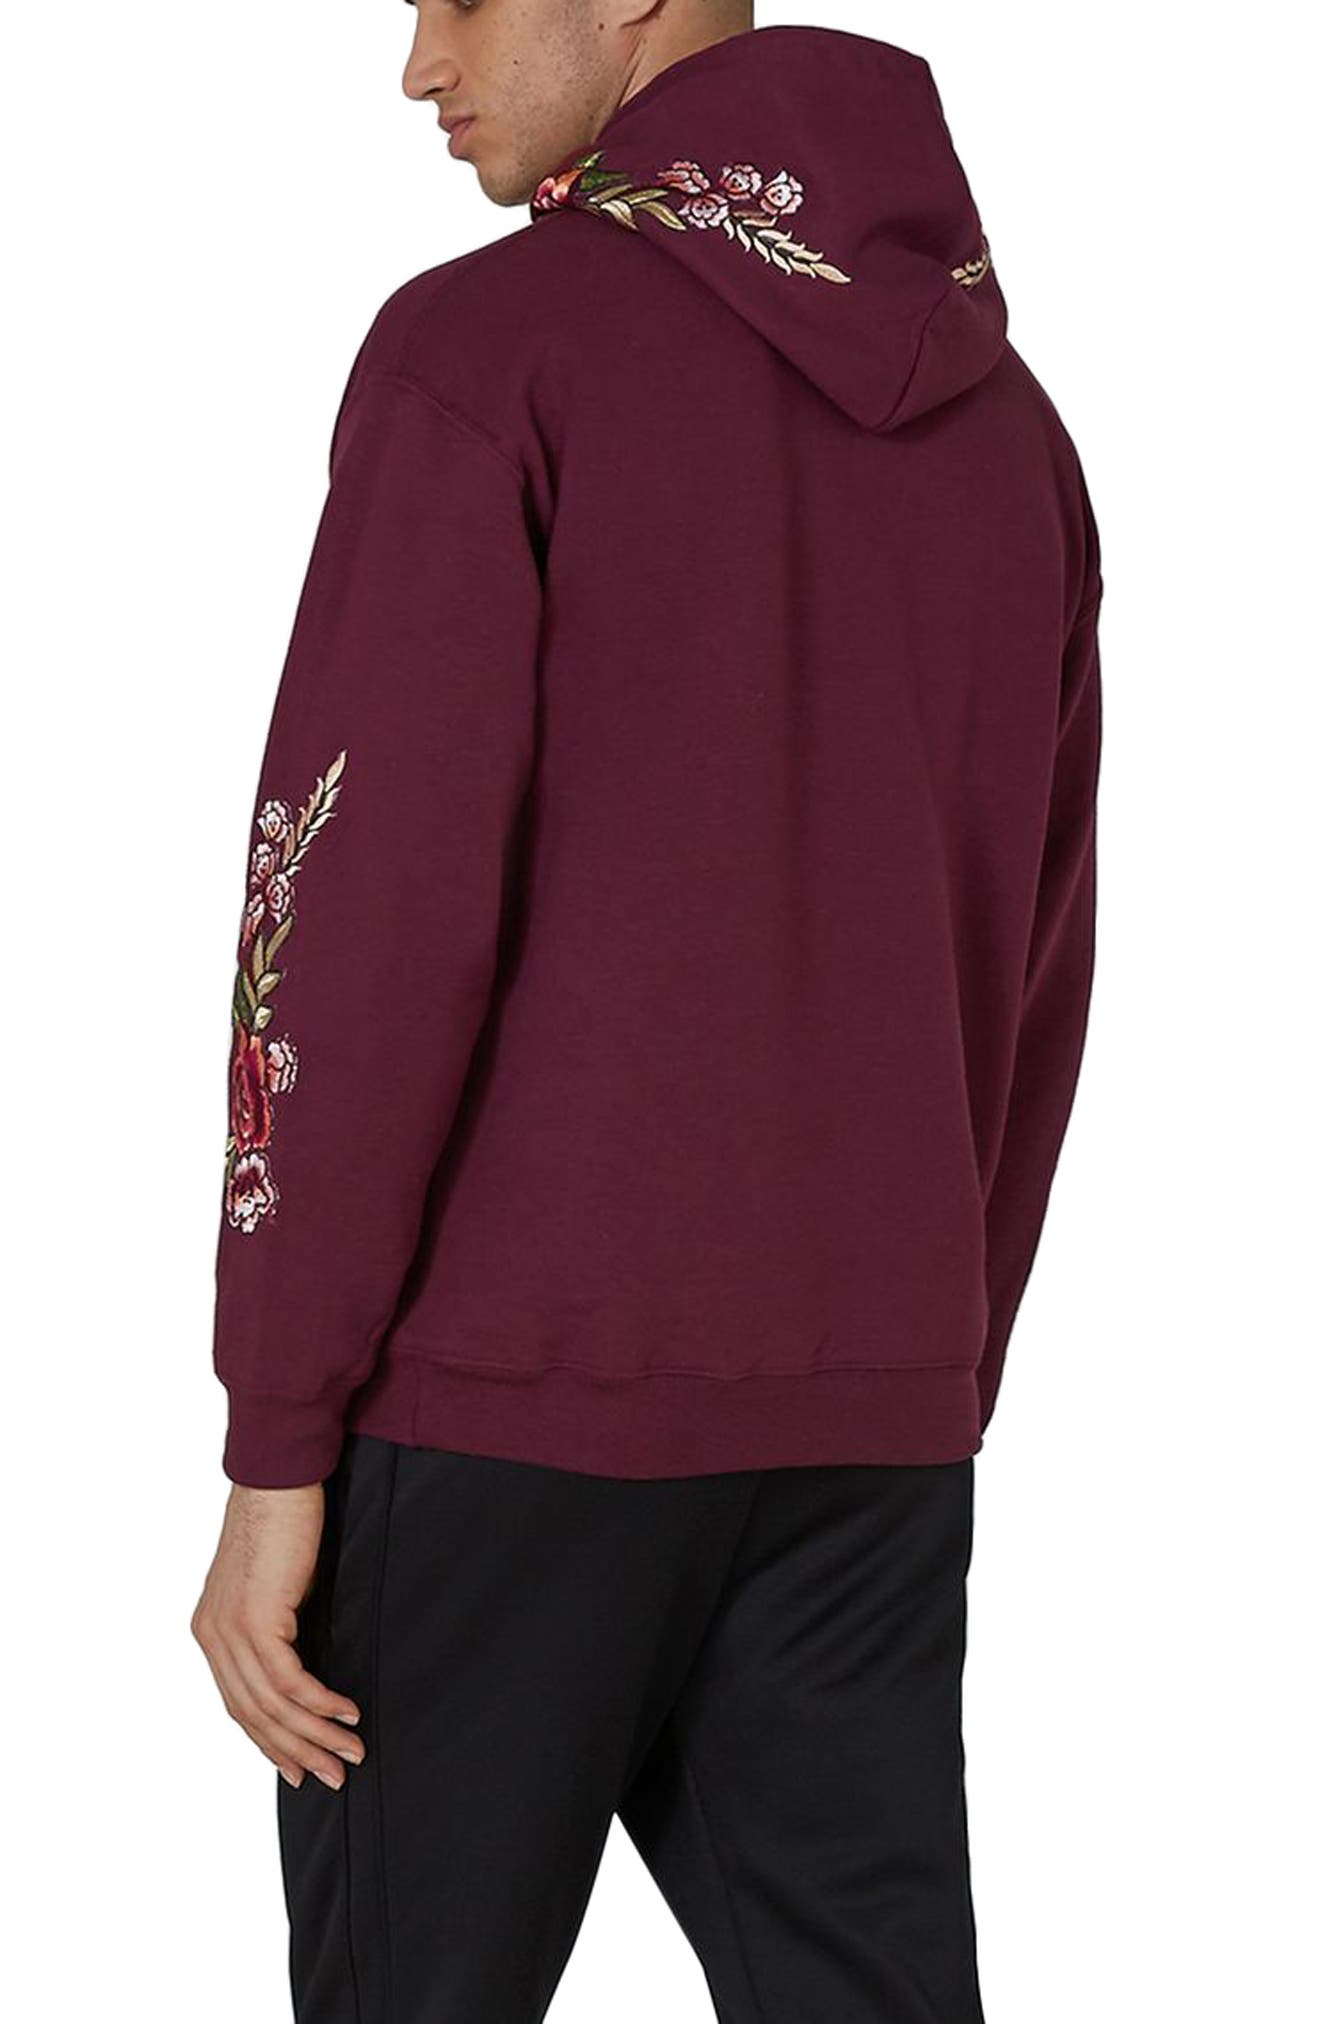 Rose Embroidered Hoodie,                             Alternate thumbnail 2, color,                             930